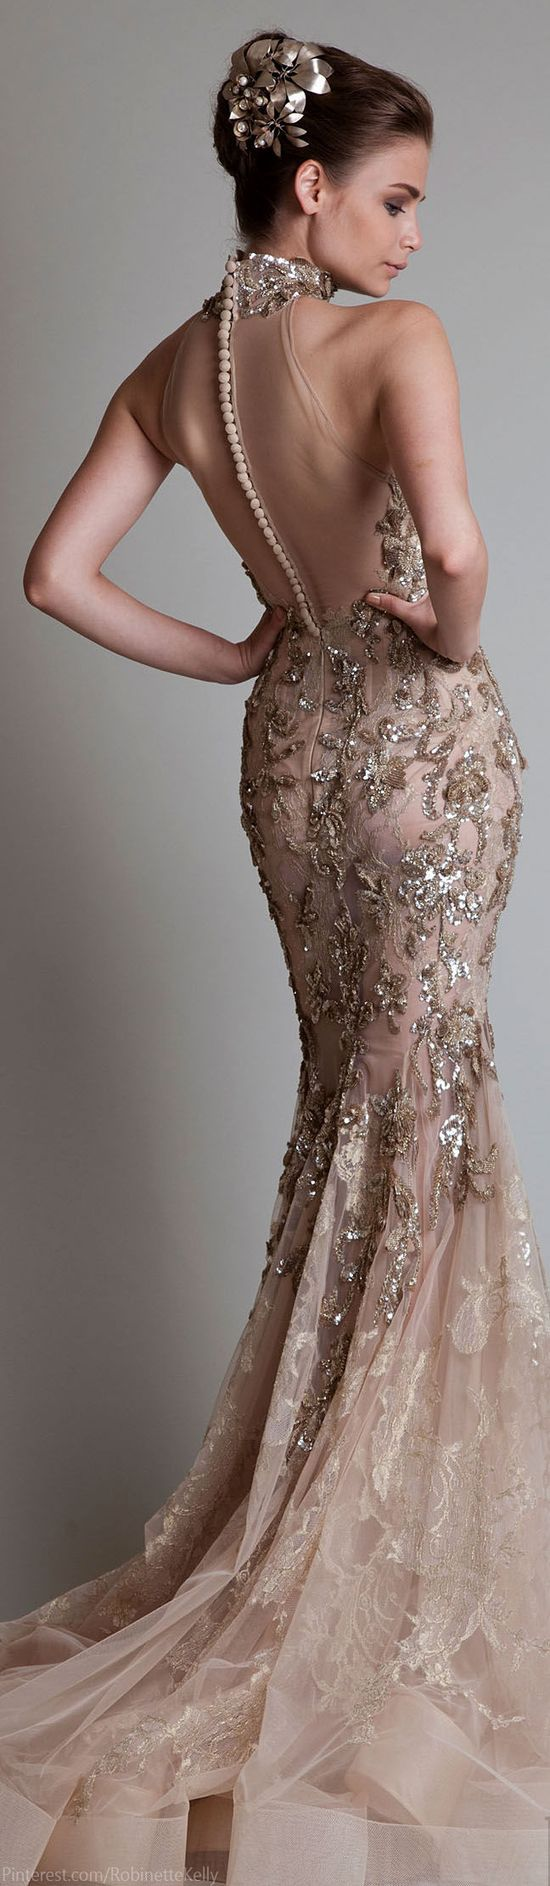 Lovely evening gown ~Latest Luxurious Women�019s Fashion �013 Haute Couture �013 dresses, jackets. bags, jewellery, shoes etc